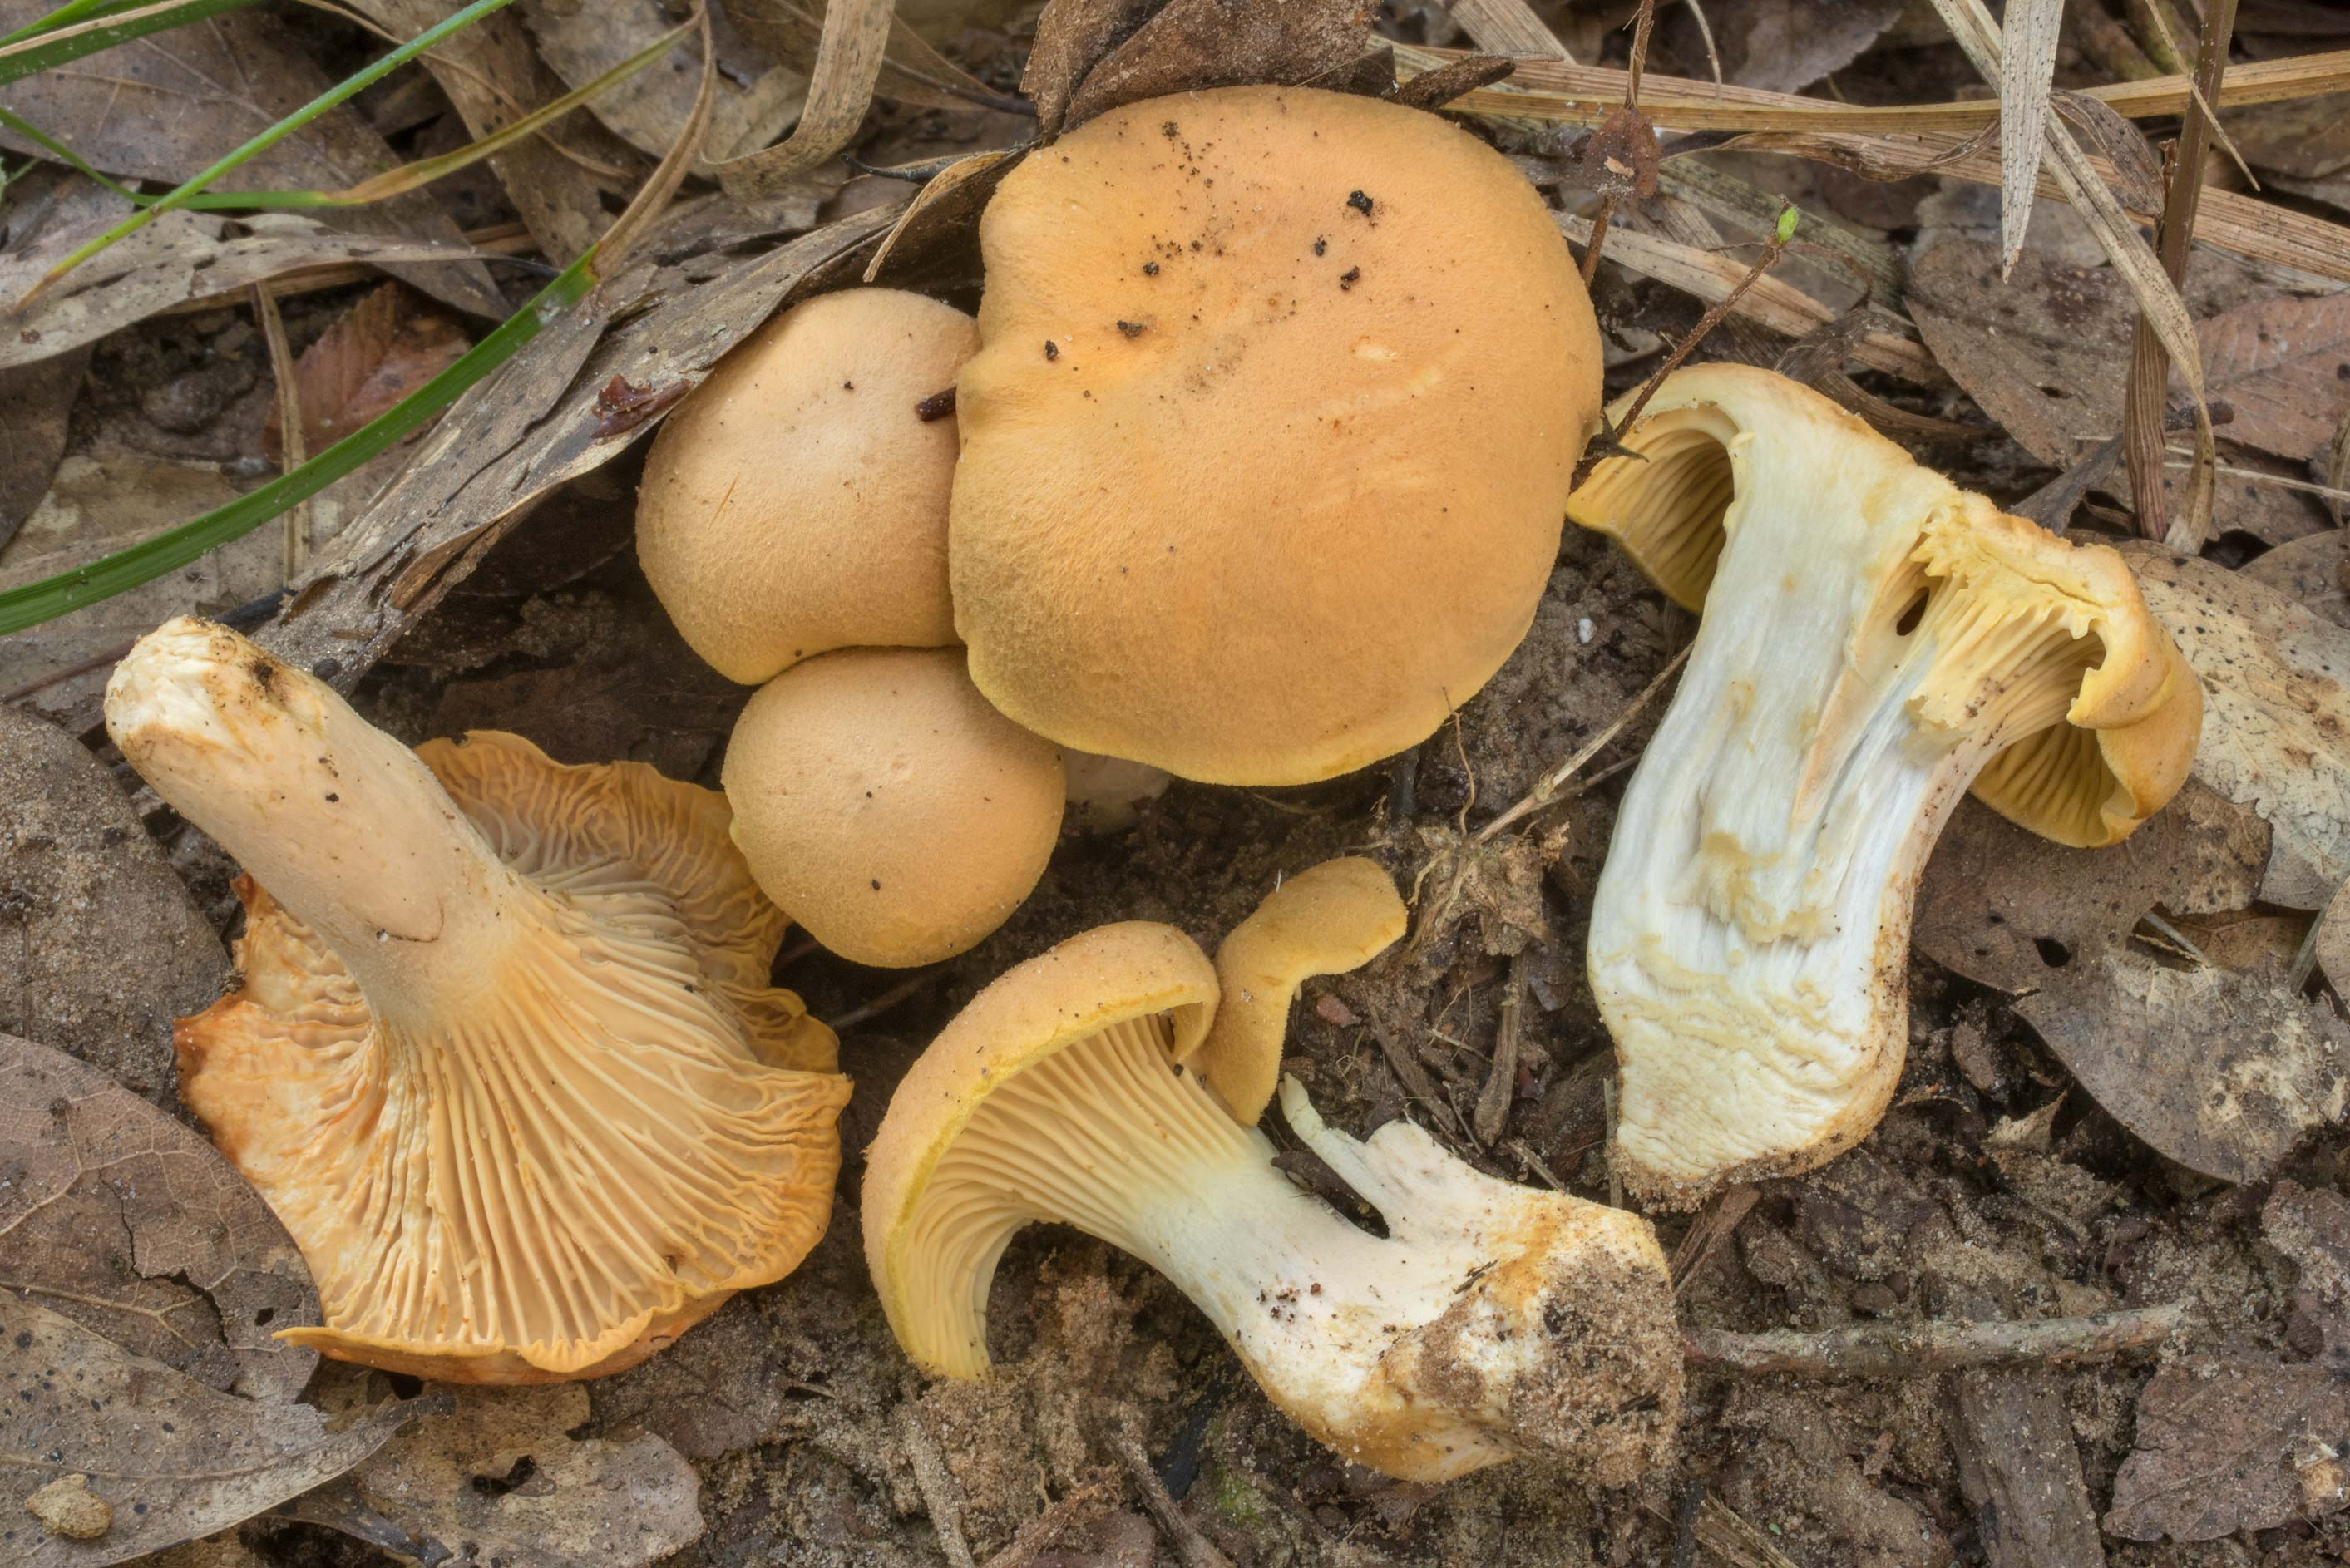 Dissected chanterelle mushrooms (Cantharellus...Creek Park. College Station, Texas